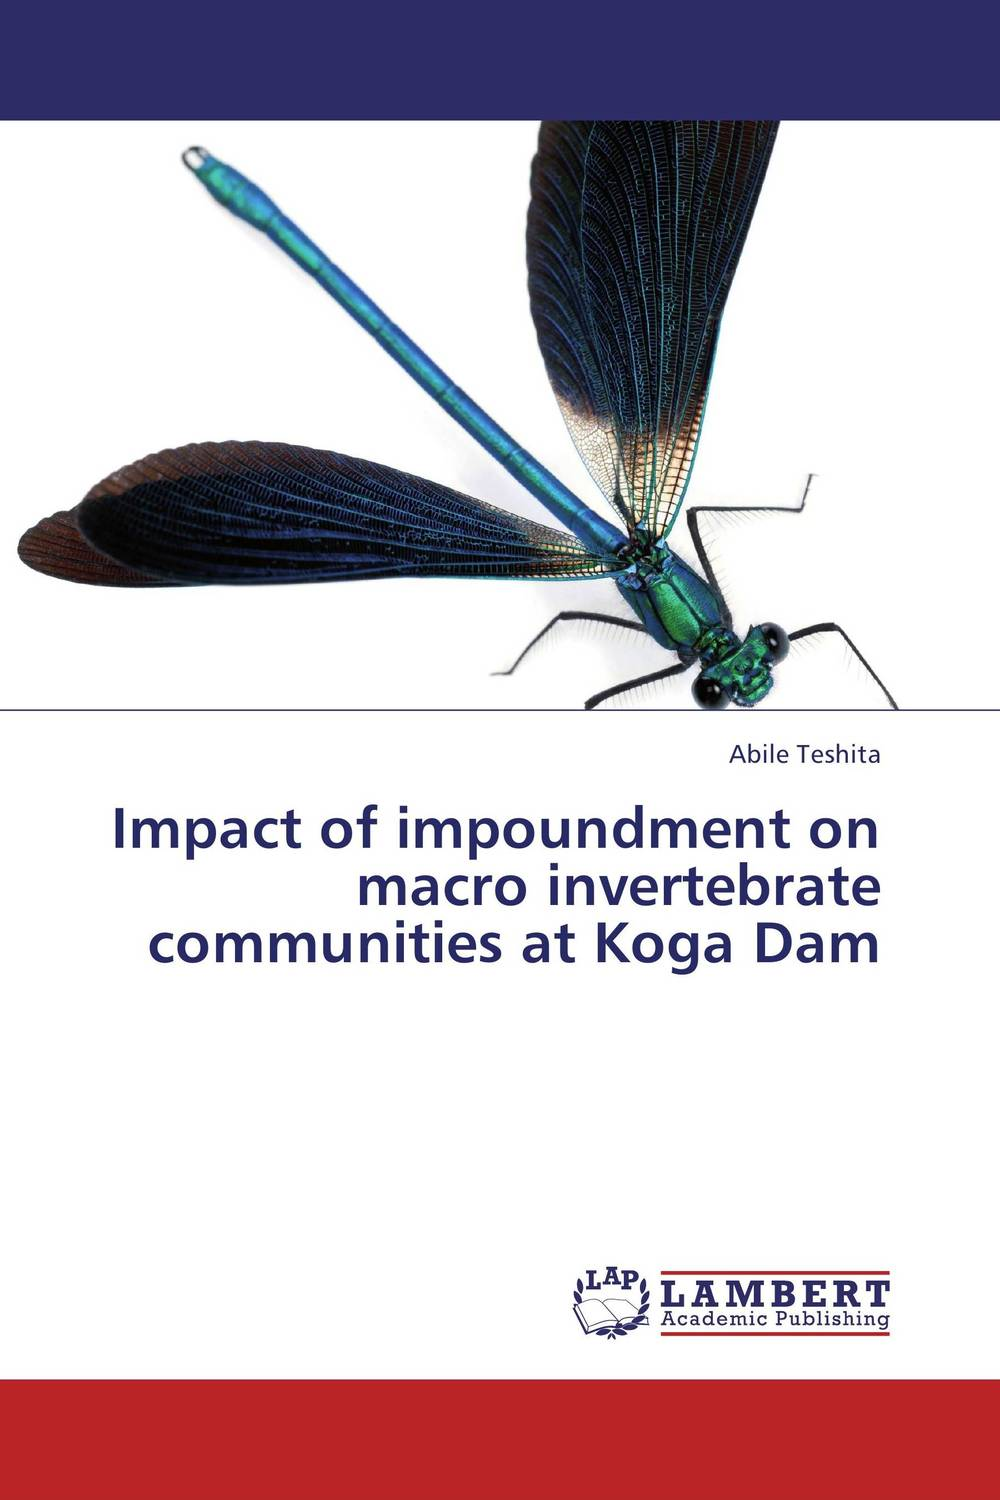 Impact of impoundment on macro invertebrate communities at Koga Dam alex kisingo impact of heathland management approaches on ground beetle communities